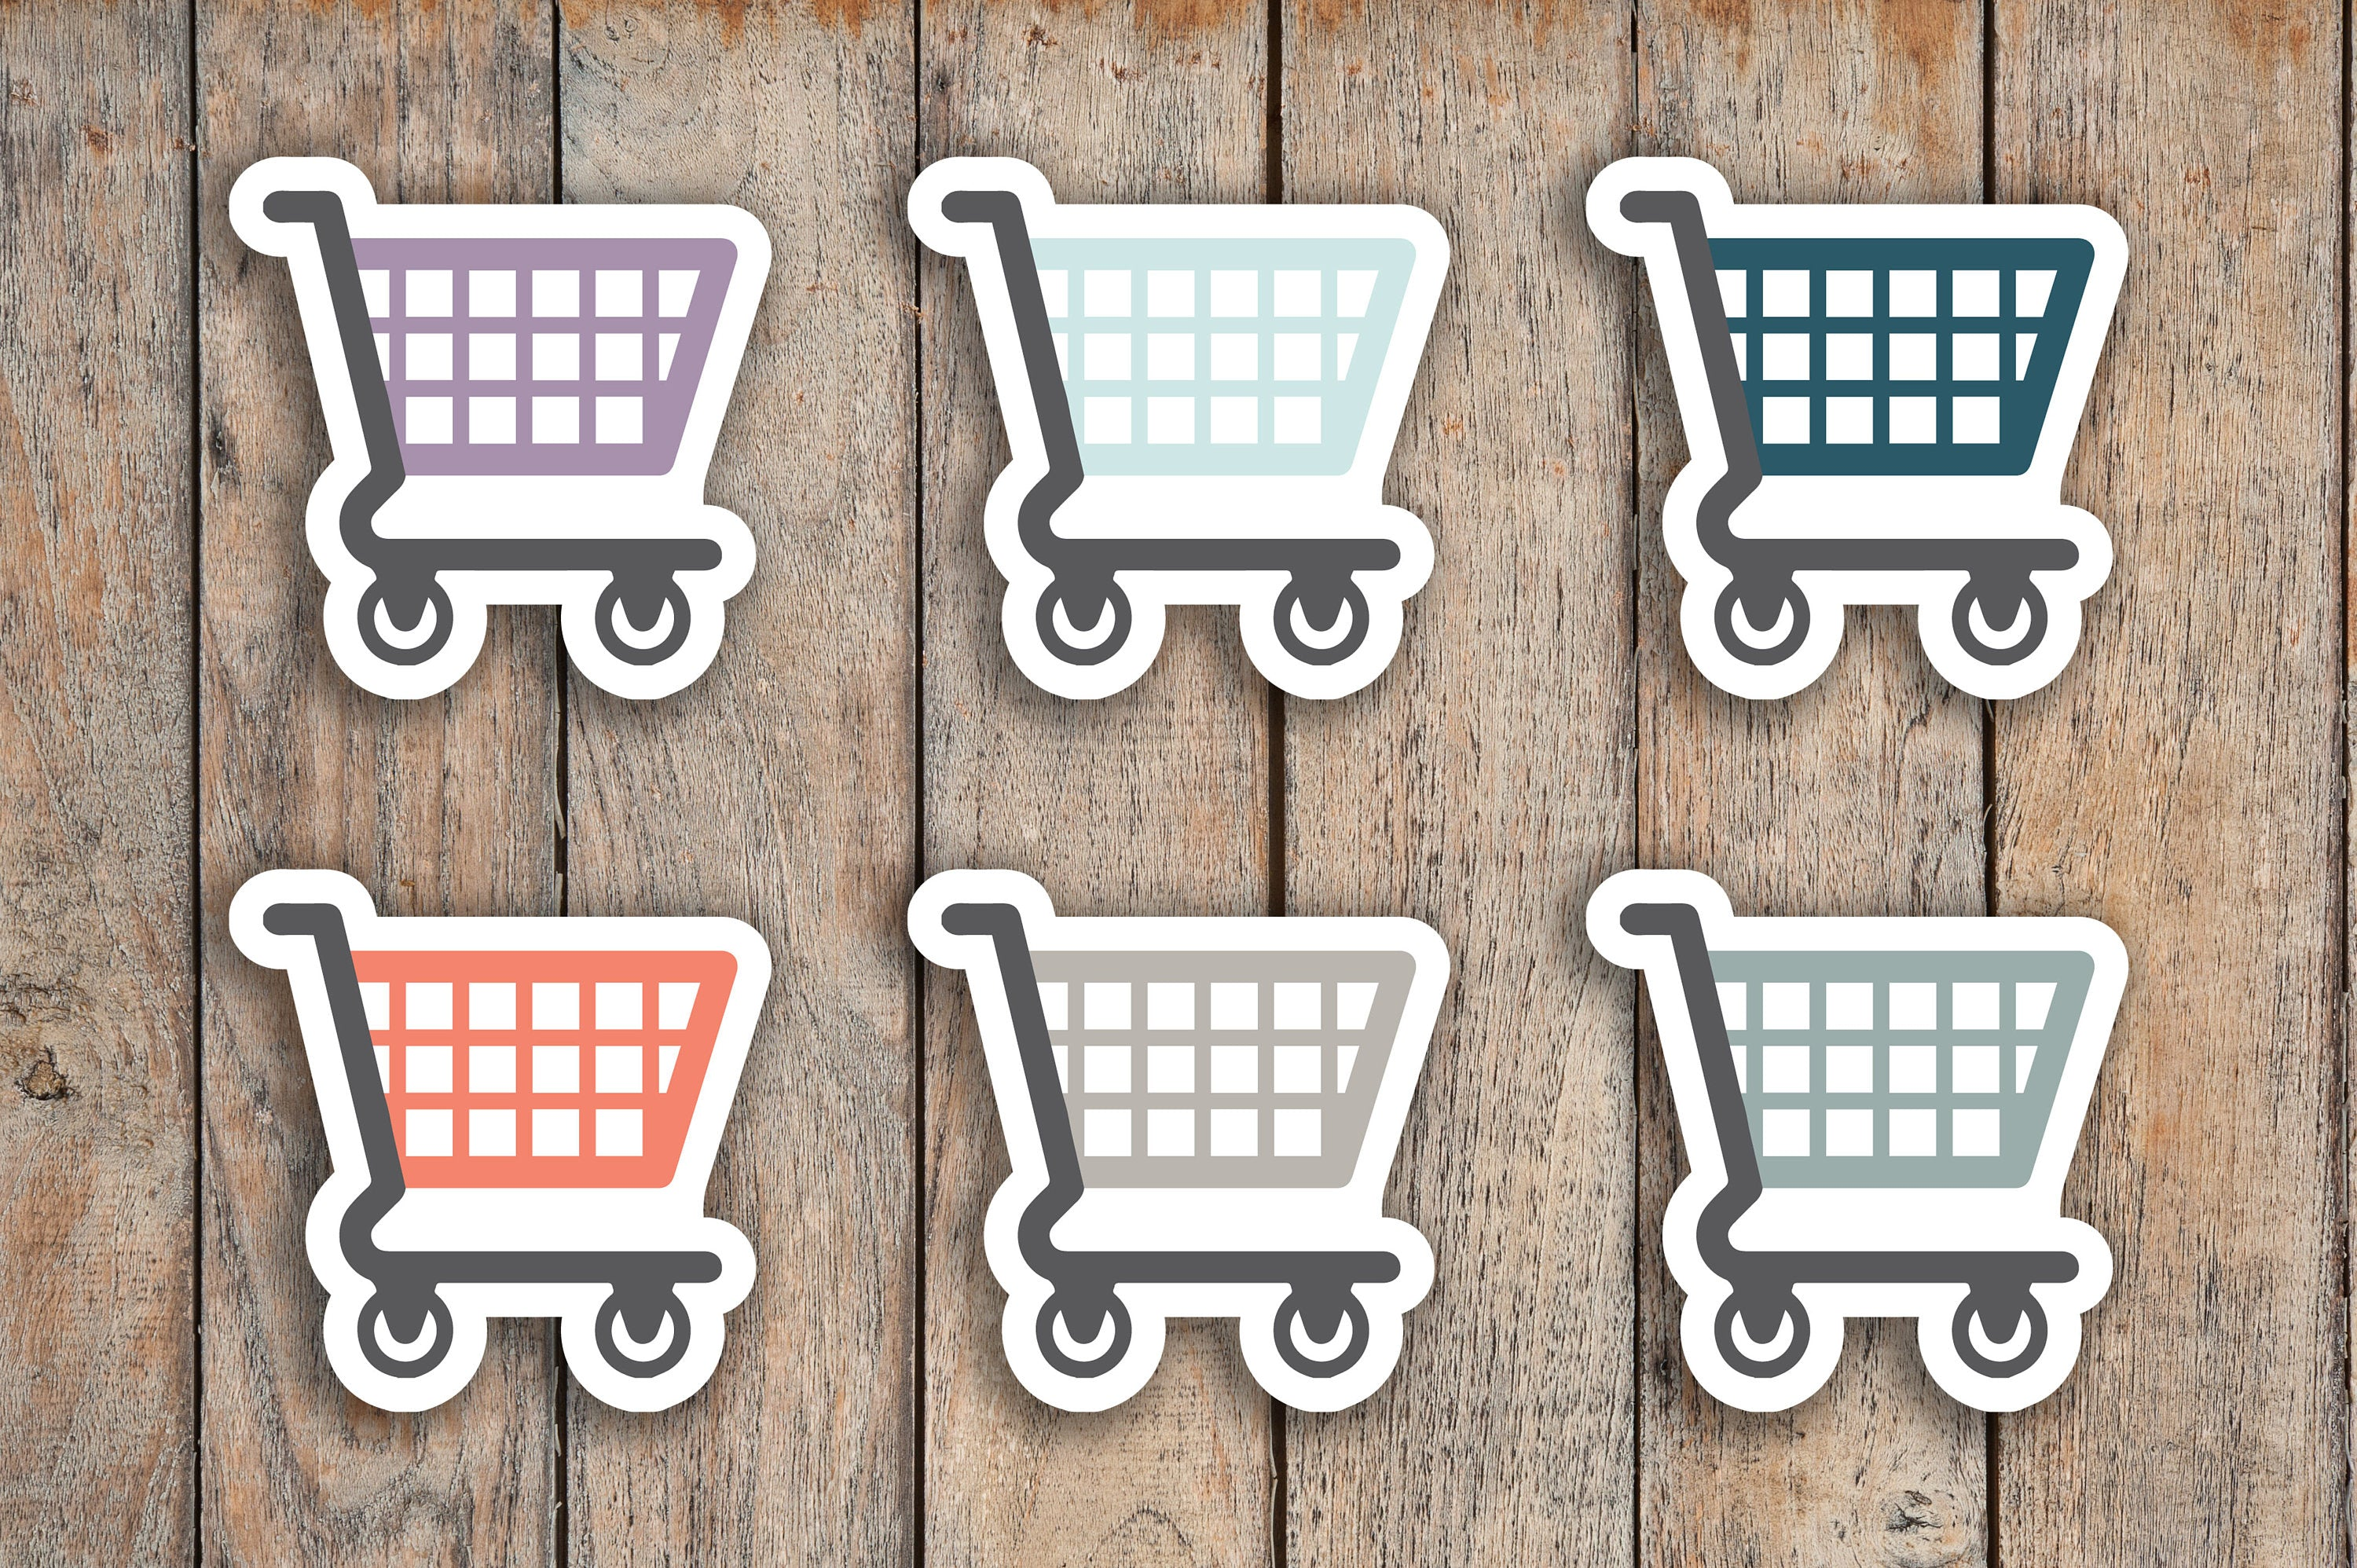 63 Grocery, Shopping Cart, Food Shopping, Groceries Icon Planner Sticker for 2018 inkWELL Press Planners IWP-Q63